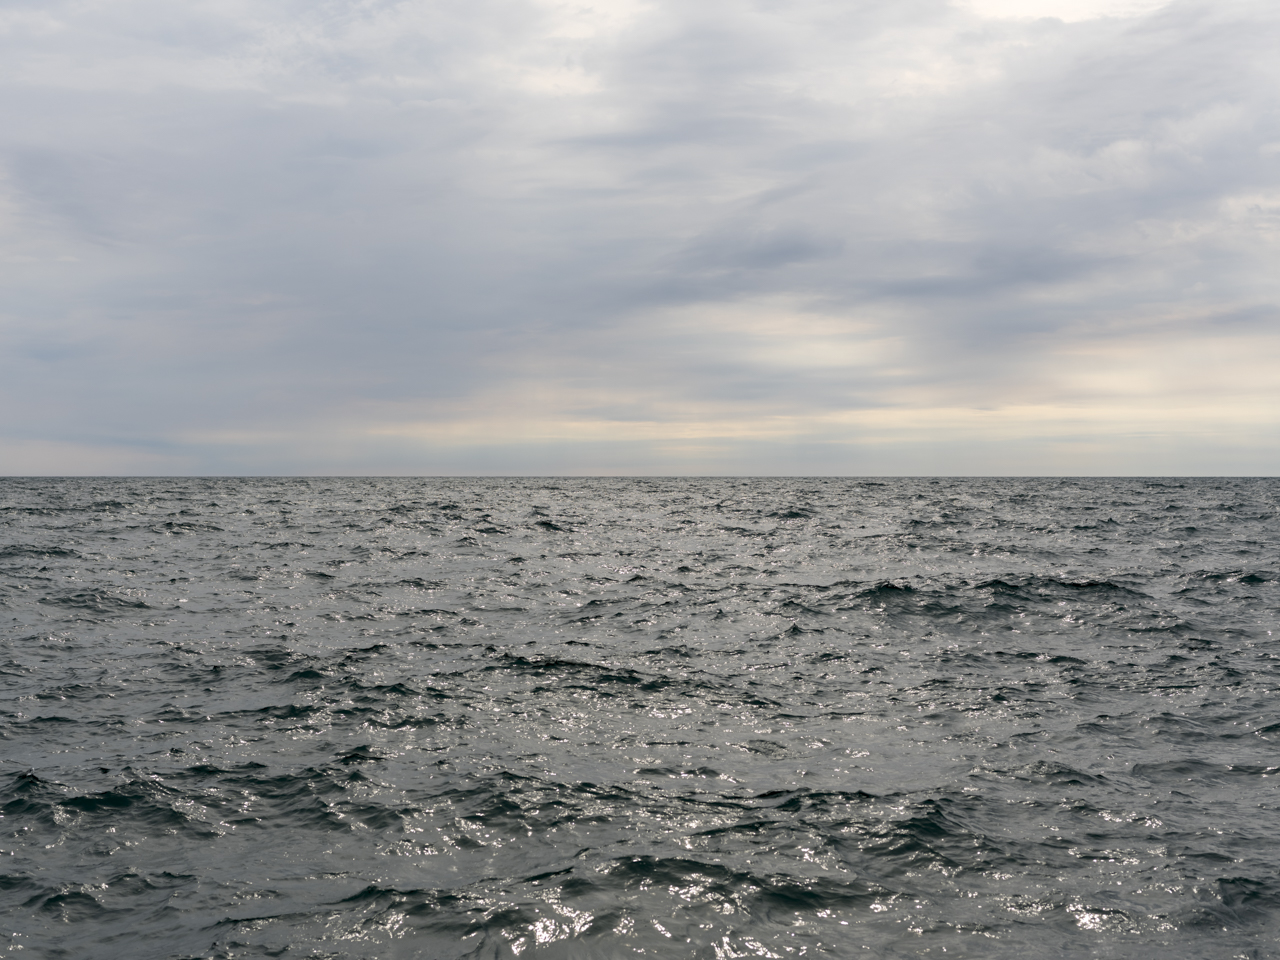 gray greens in choppy water while a cloudy sky has a mixture of pastel and blue tones smearing together